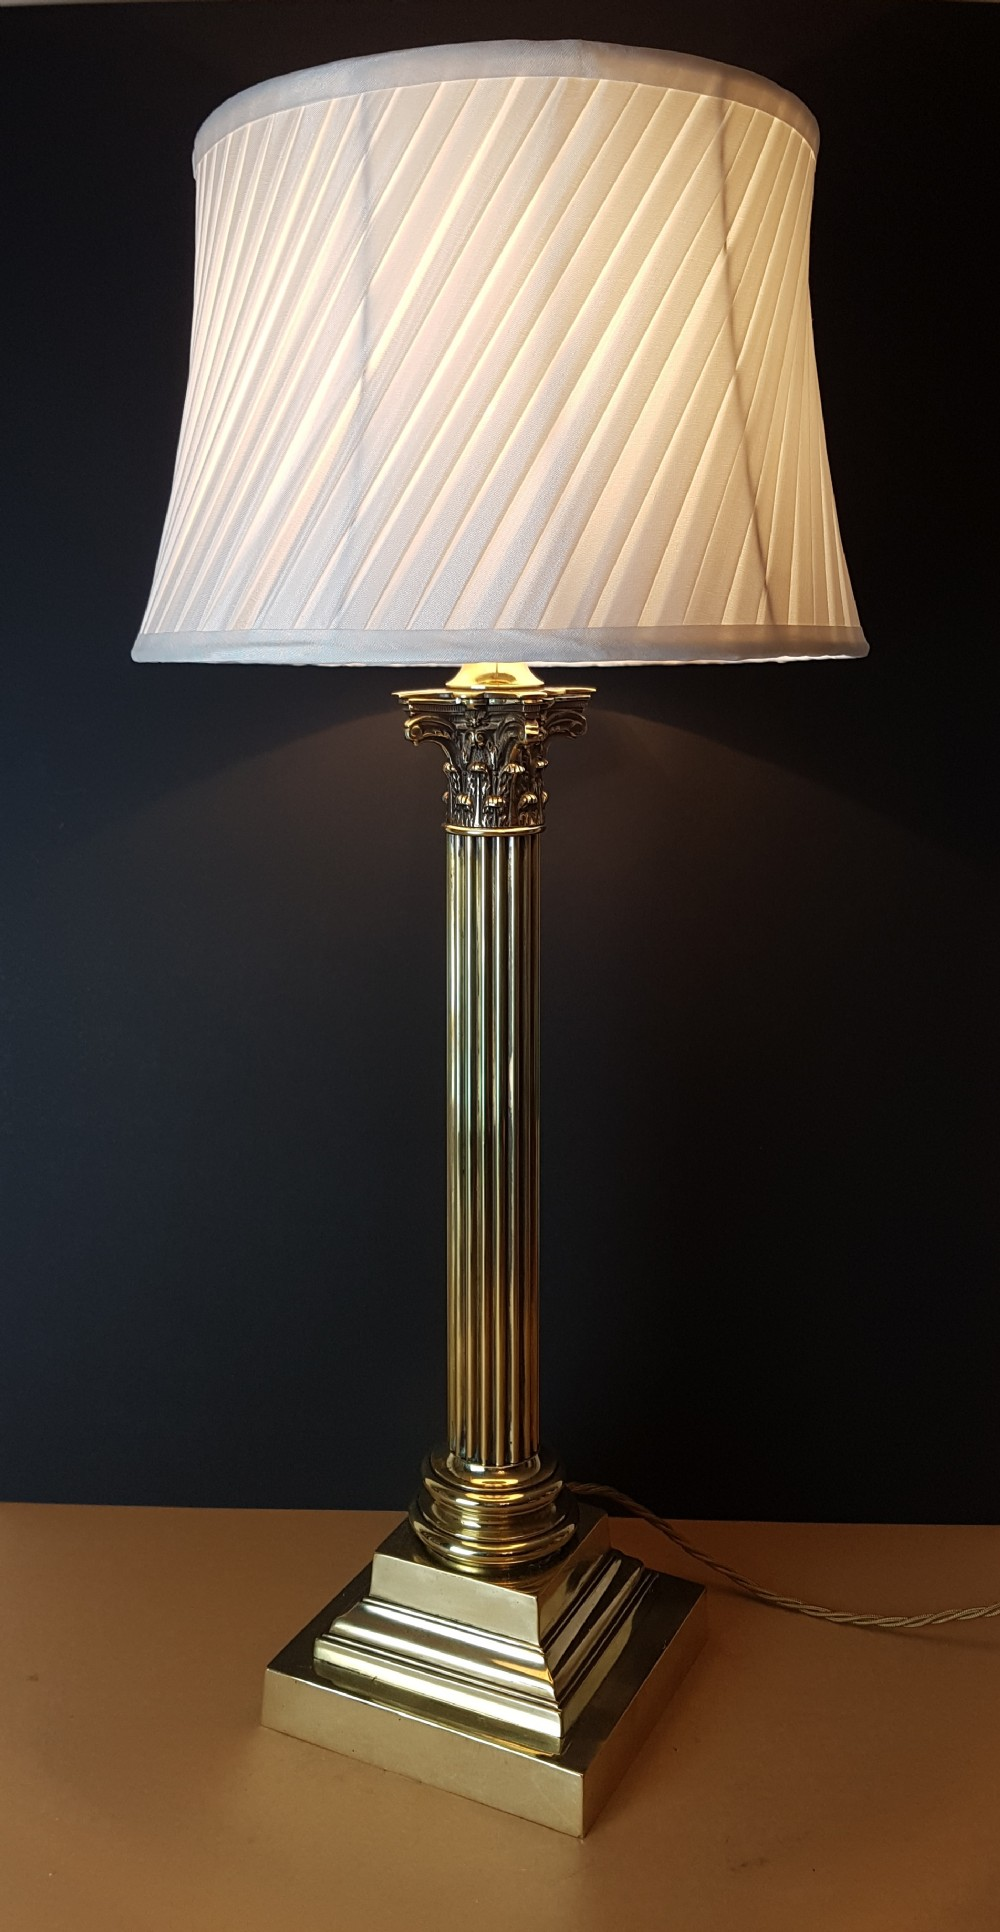 C1910 Very Large Brass Corinthian Column Table Lamp Rewired And Pat Rewiring Antique Floor Lamps Tested